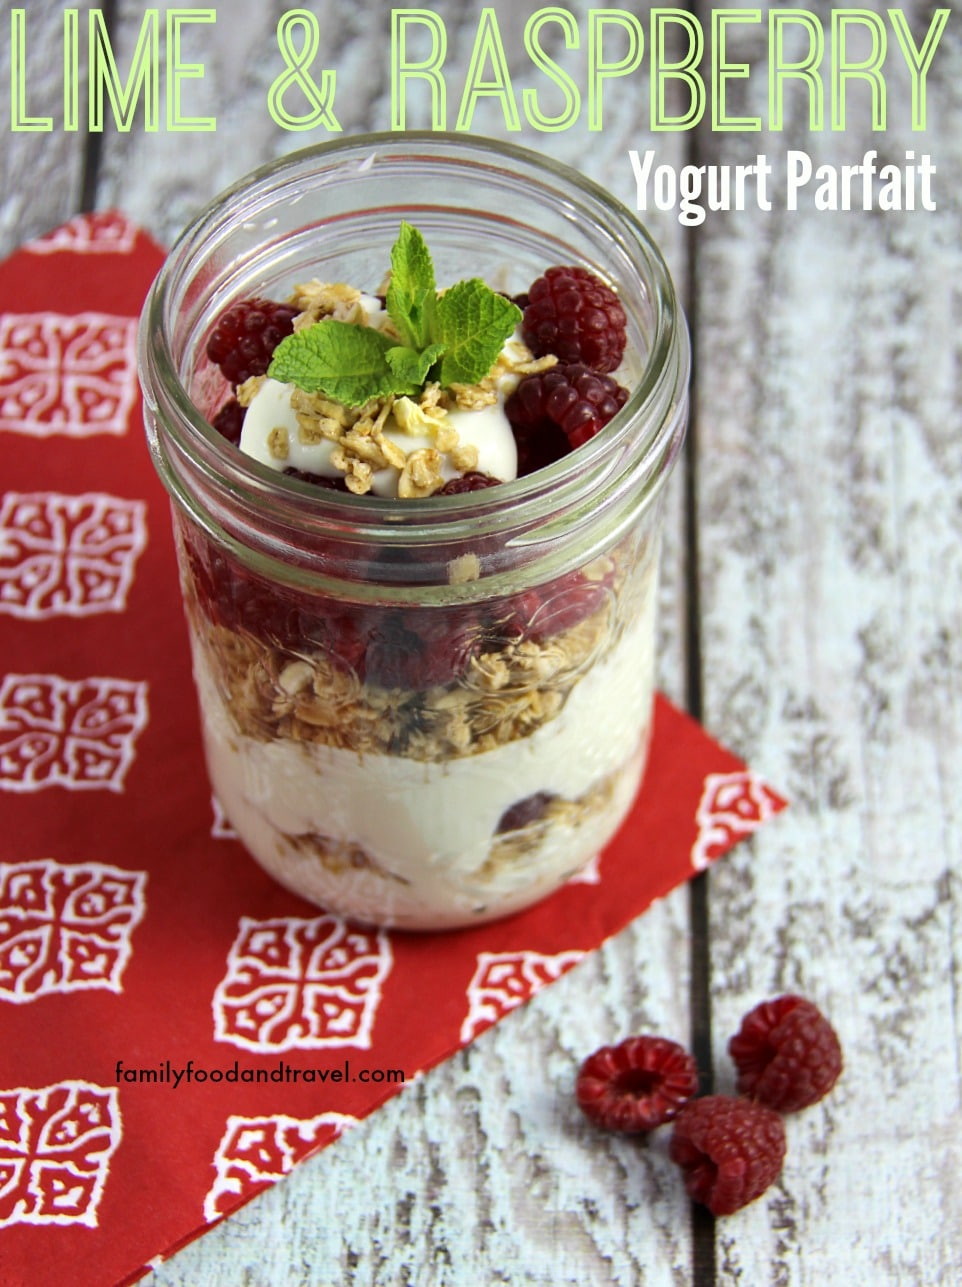 Lime and Raspberry Yogurt Parfait 2